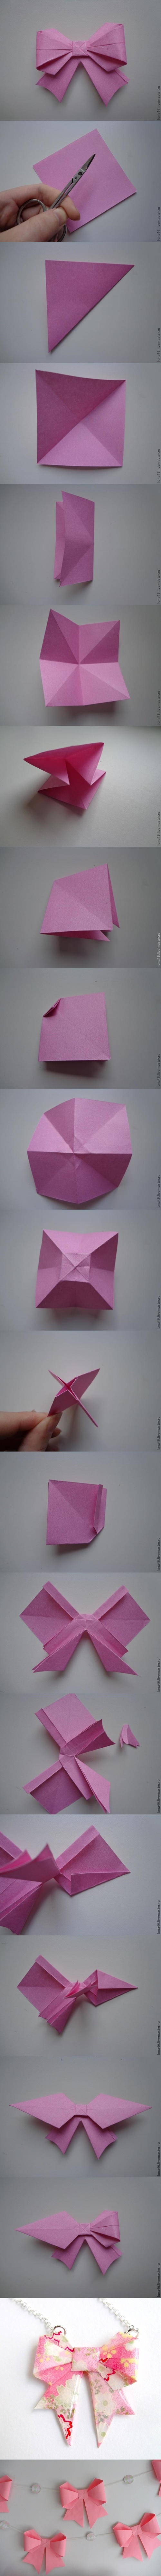 Paper Bow Making